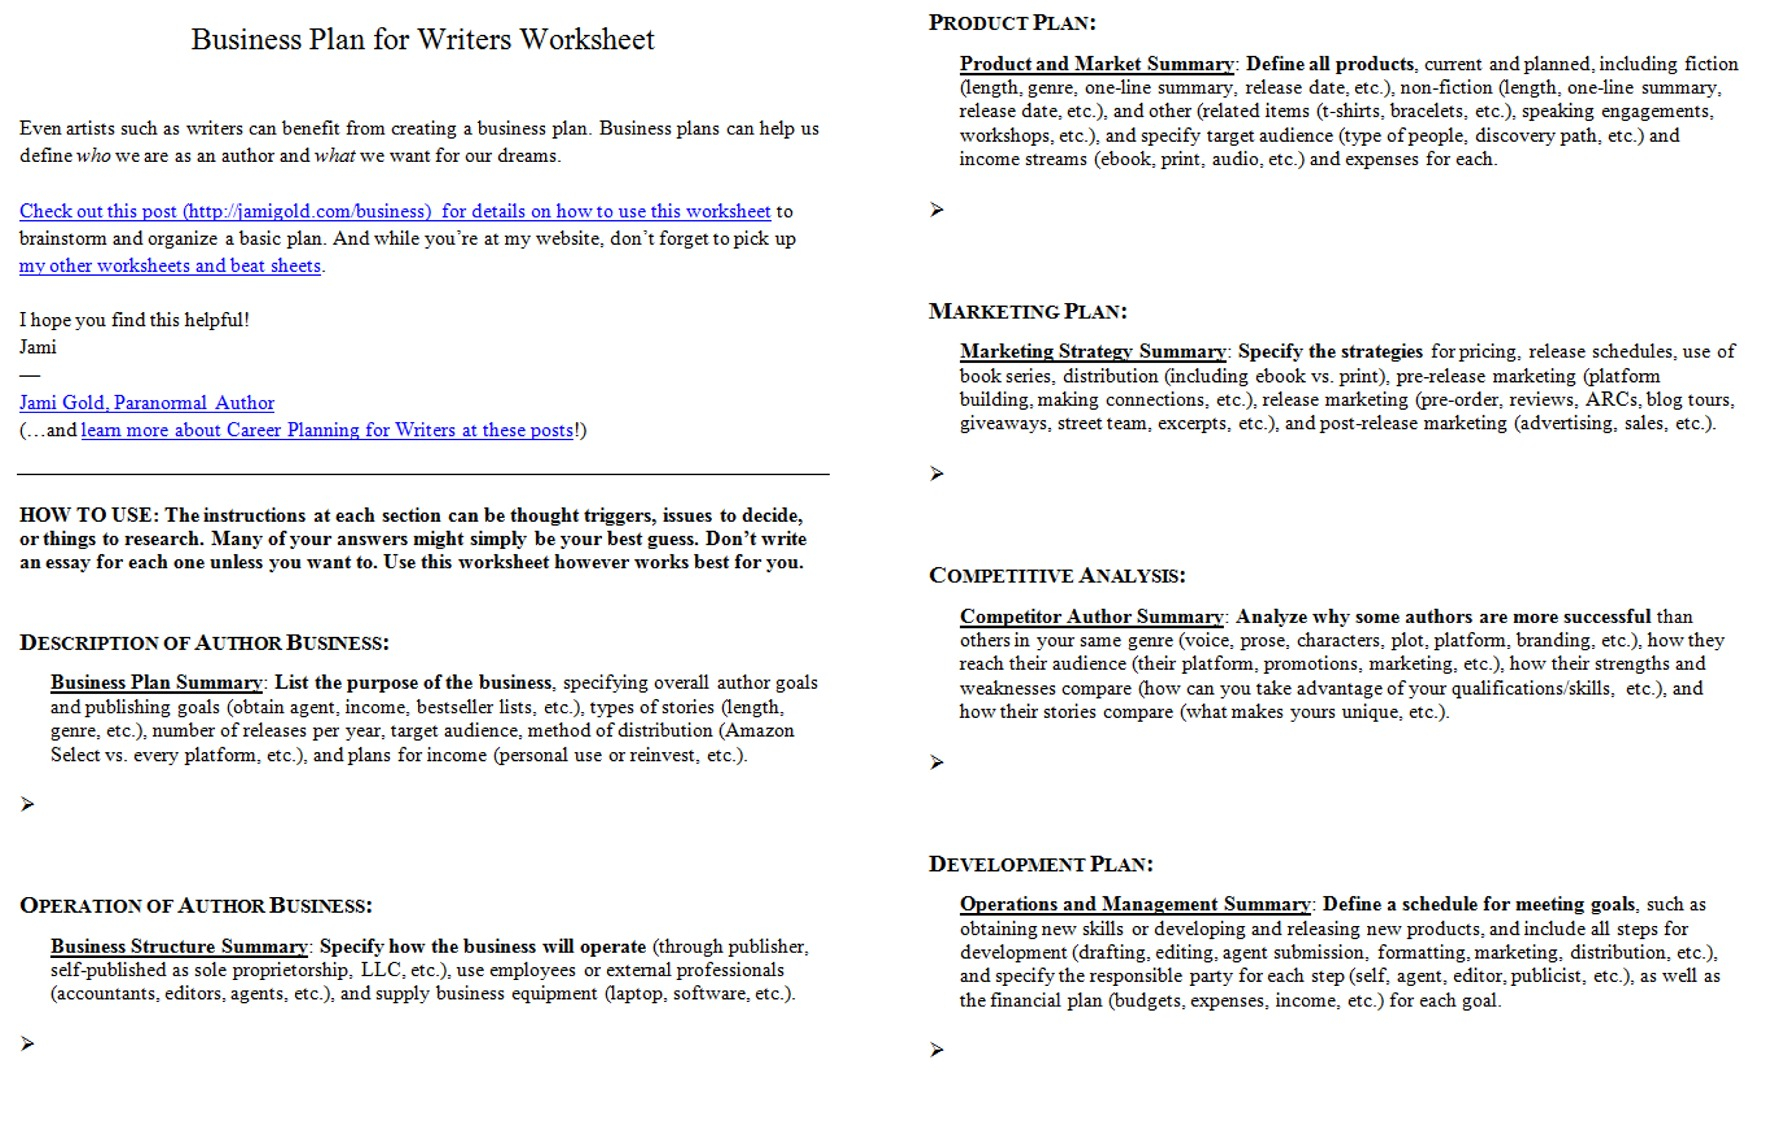 Weirdmailus  Remarkable Worksheets For Writers  Jami Gold Paranormal Author With Extraordinary Screen Shot Of Both Pages Of The Business Plan For Writers Worksheet With Captivating Counting Money Worksheets Also Line Plot Worksheets In Addition Measurement Worksheets And Domain And Range Worksheet As Well As One Step Equations Worksheet Additionally Free Kindergarten Worksheets From Jamigoldcom With Weirdmailus  Extraordinary Worksheets For Writers  Jami Gold Paranormal Author With Captivating Screen Shot Of Both Pages Of The Business Plan For Writers Worksheet And Remarkable Counting Money Worksheets Also Line Plot Worksheets In Addition Measurement Worksheets From Jamigoldcom